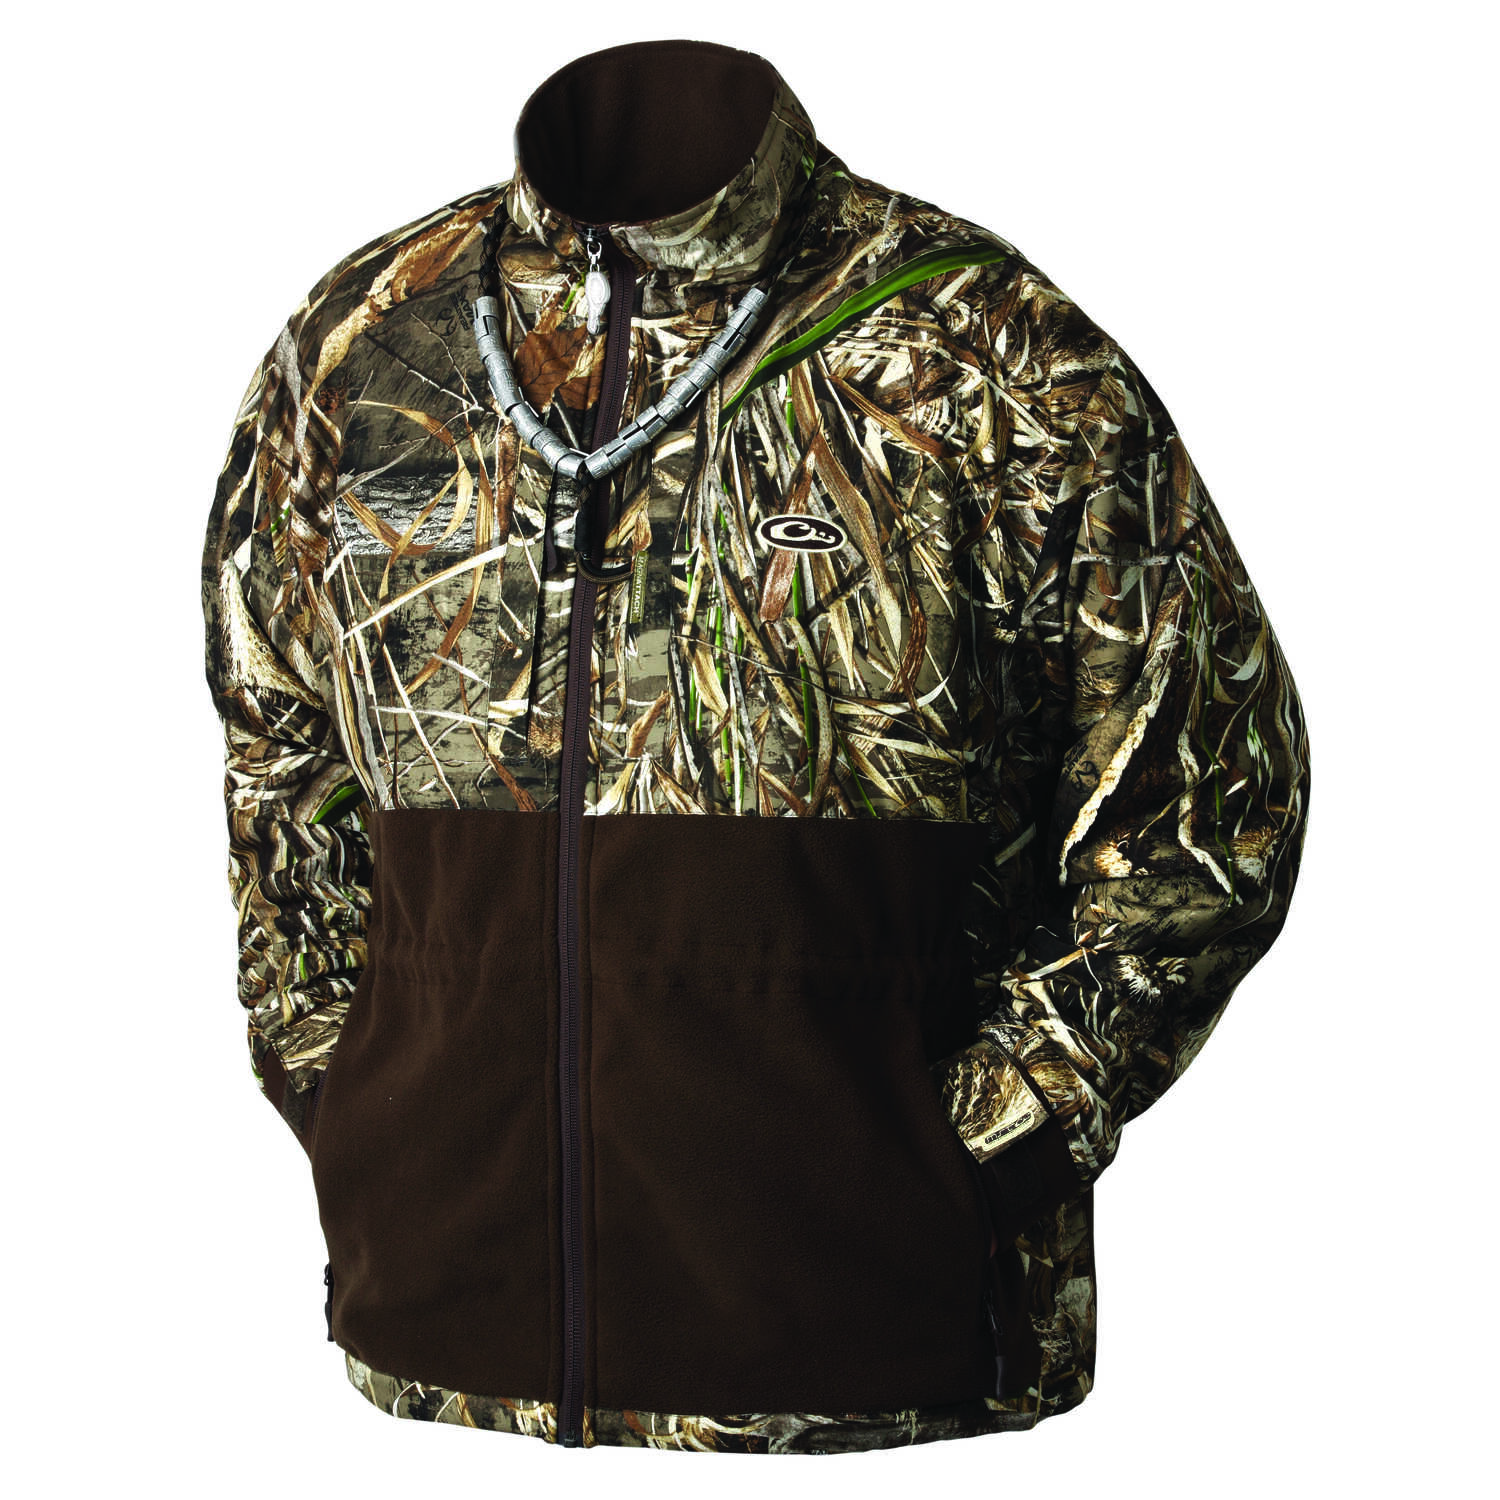 Drake  MST Eqwader  M  Long Sleeve  Men's  Full-Zip  Jacket  Realtree Max-5